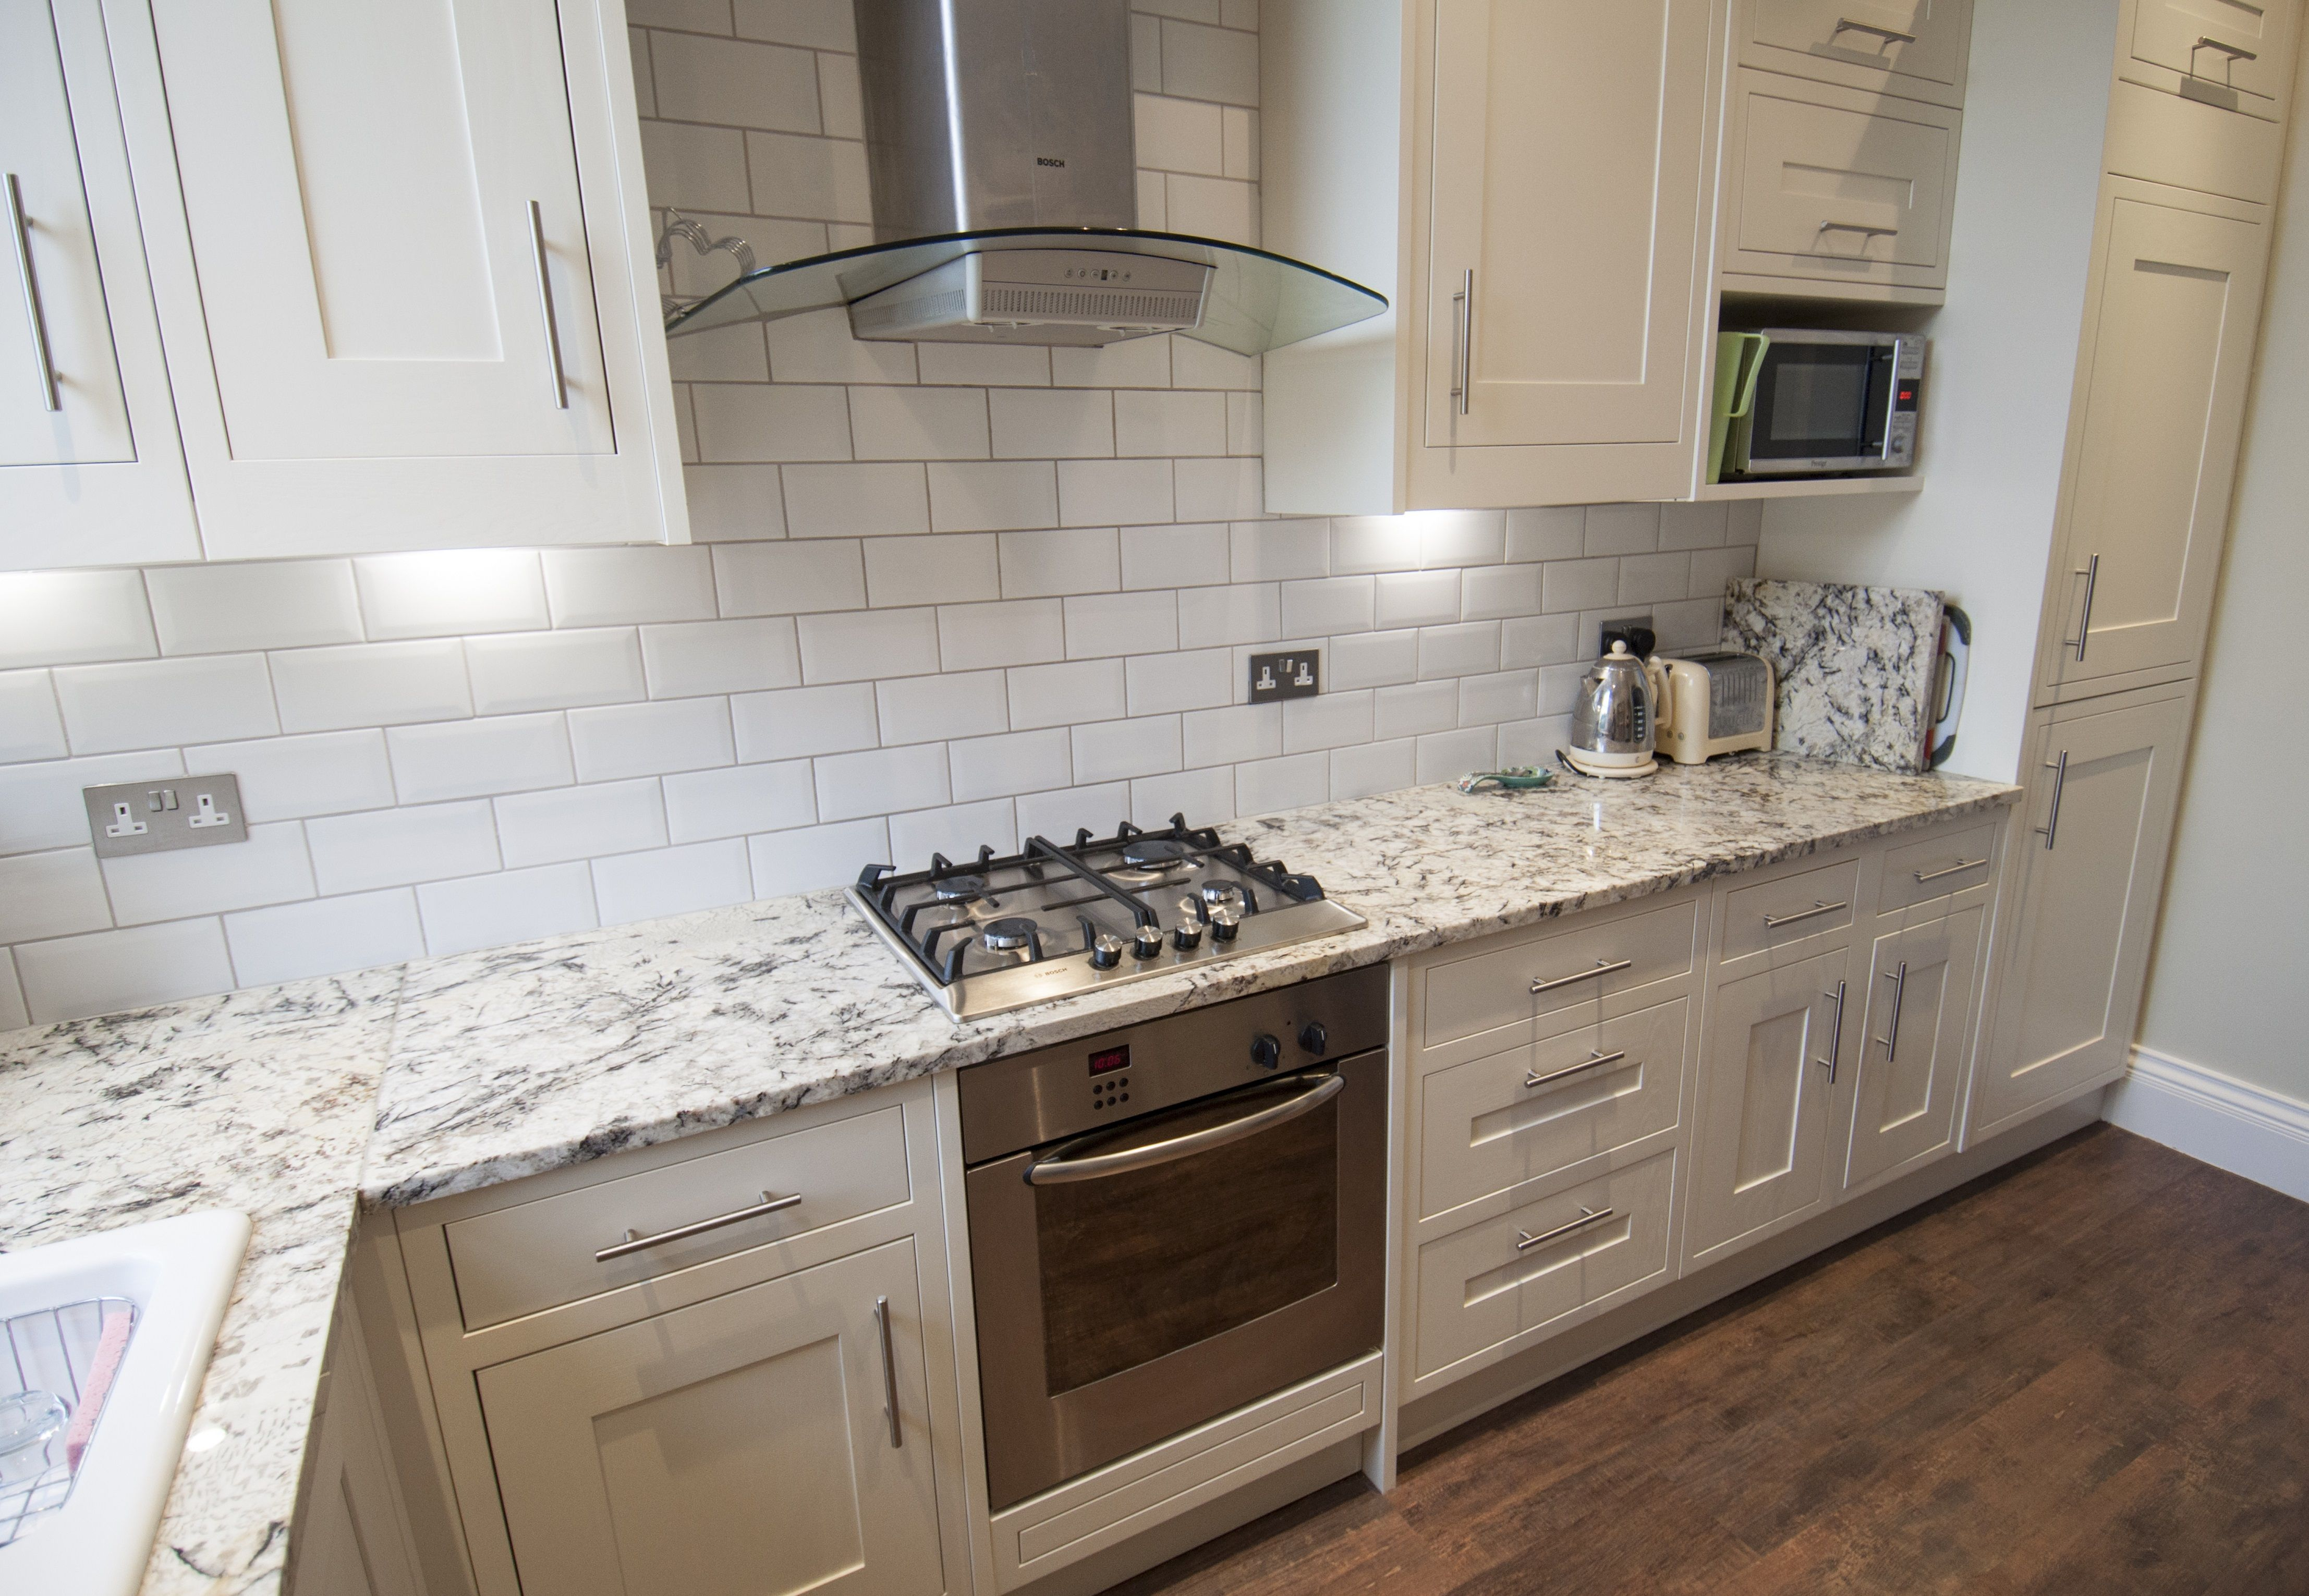 Antique Cream Granite Kitchen Worktops With White Cabinets And